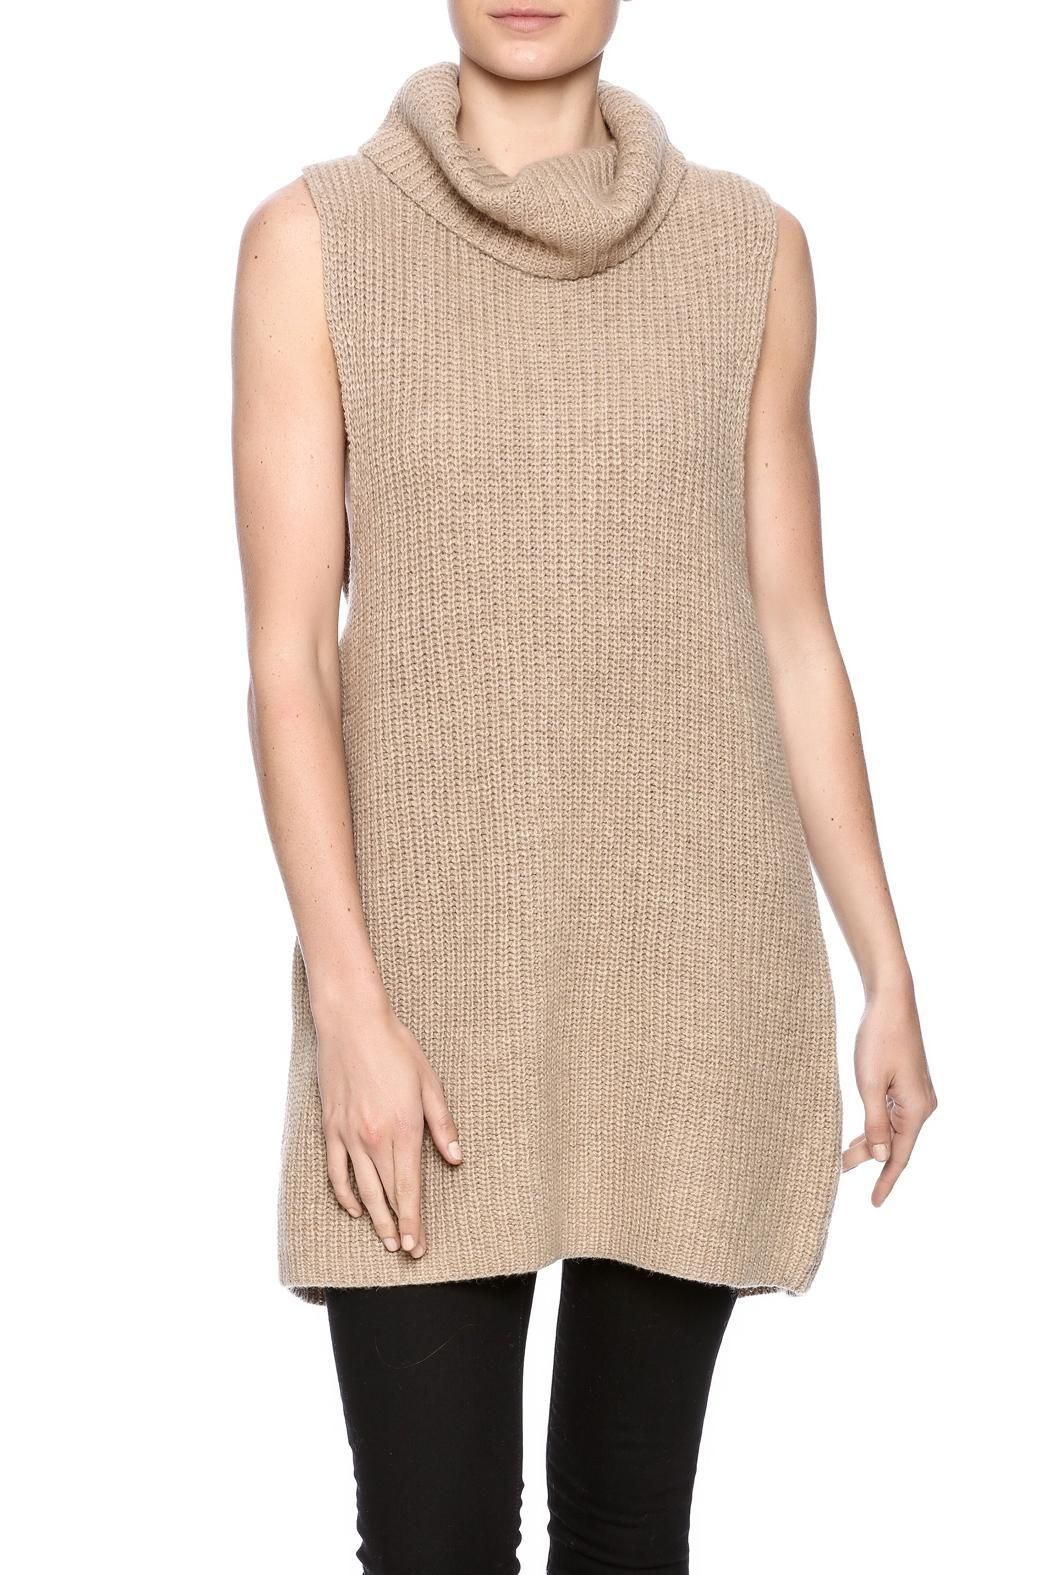 Free People Sweater Vest | Cowl neck, Free people and Boutique